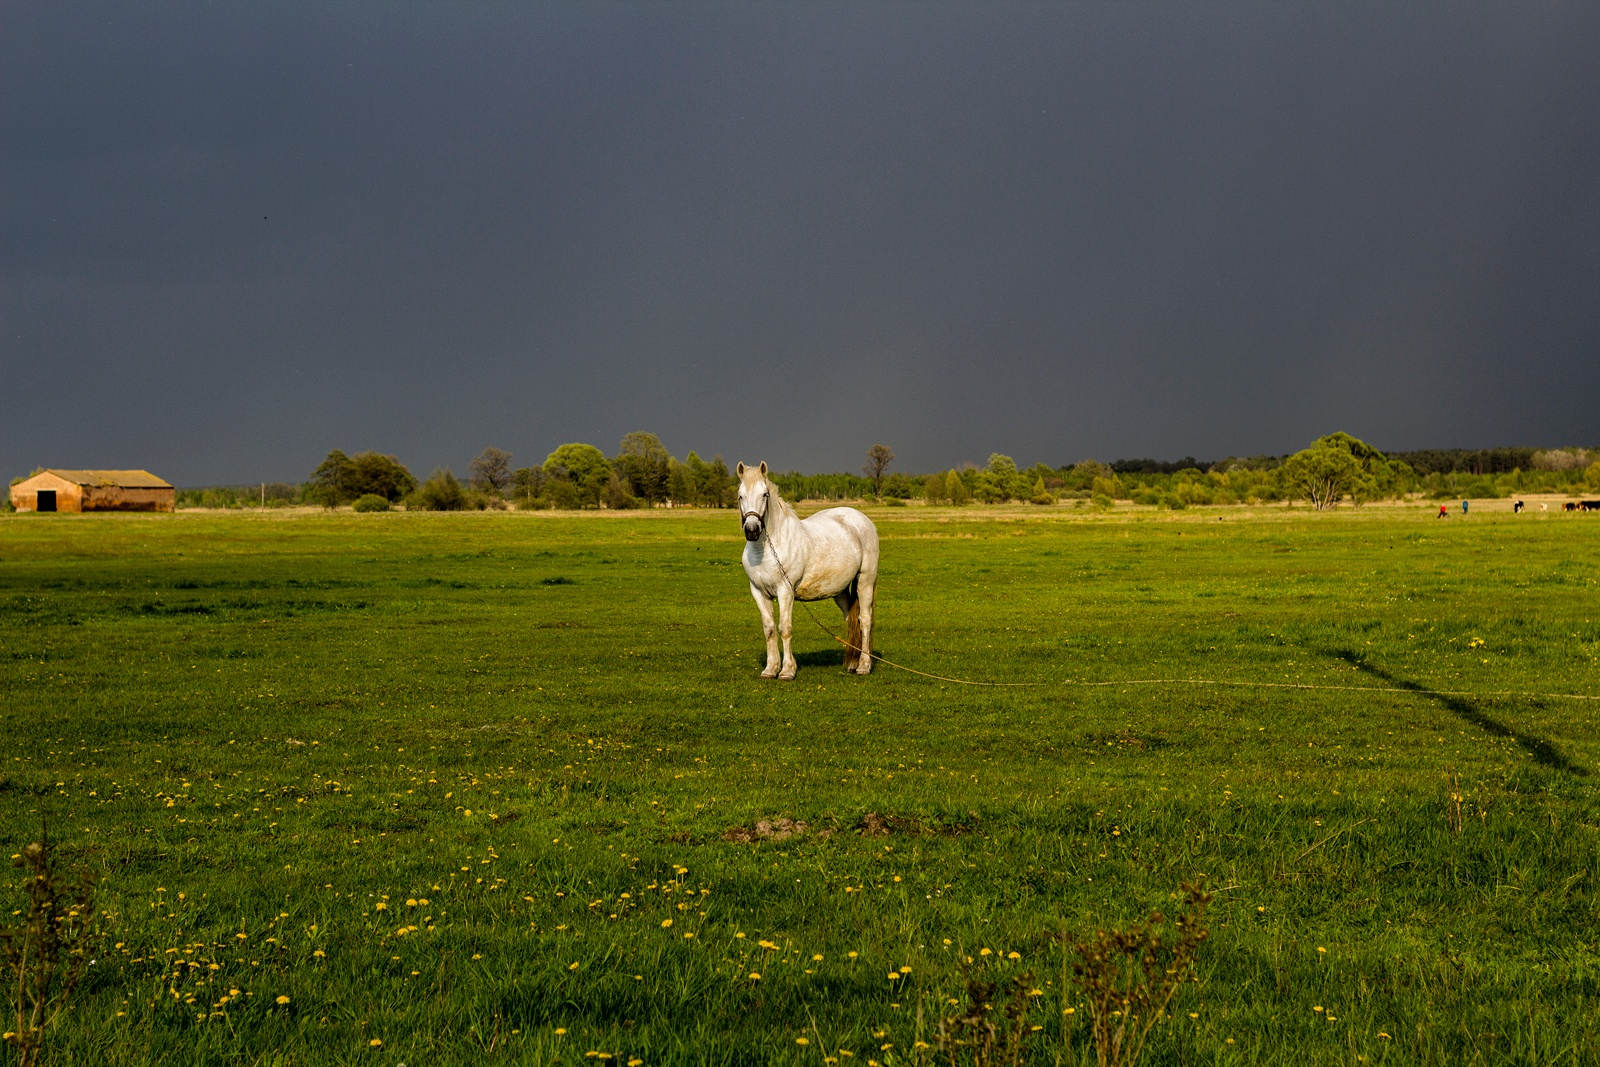 horse on nature by Andriy Medyna